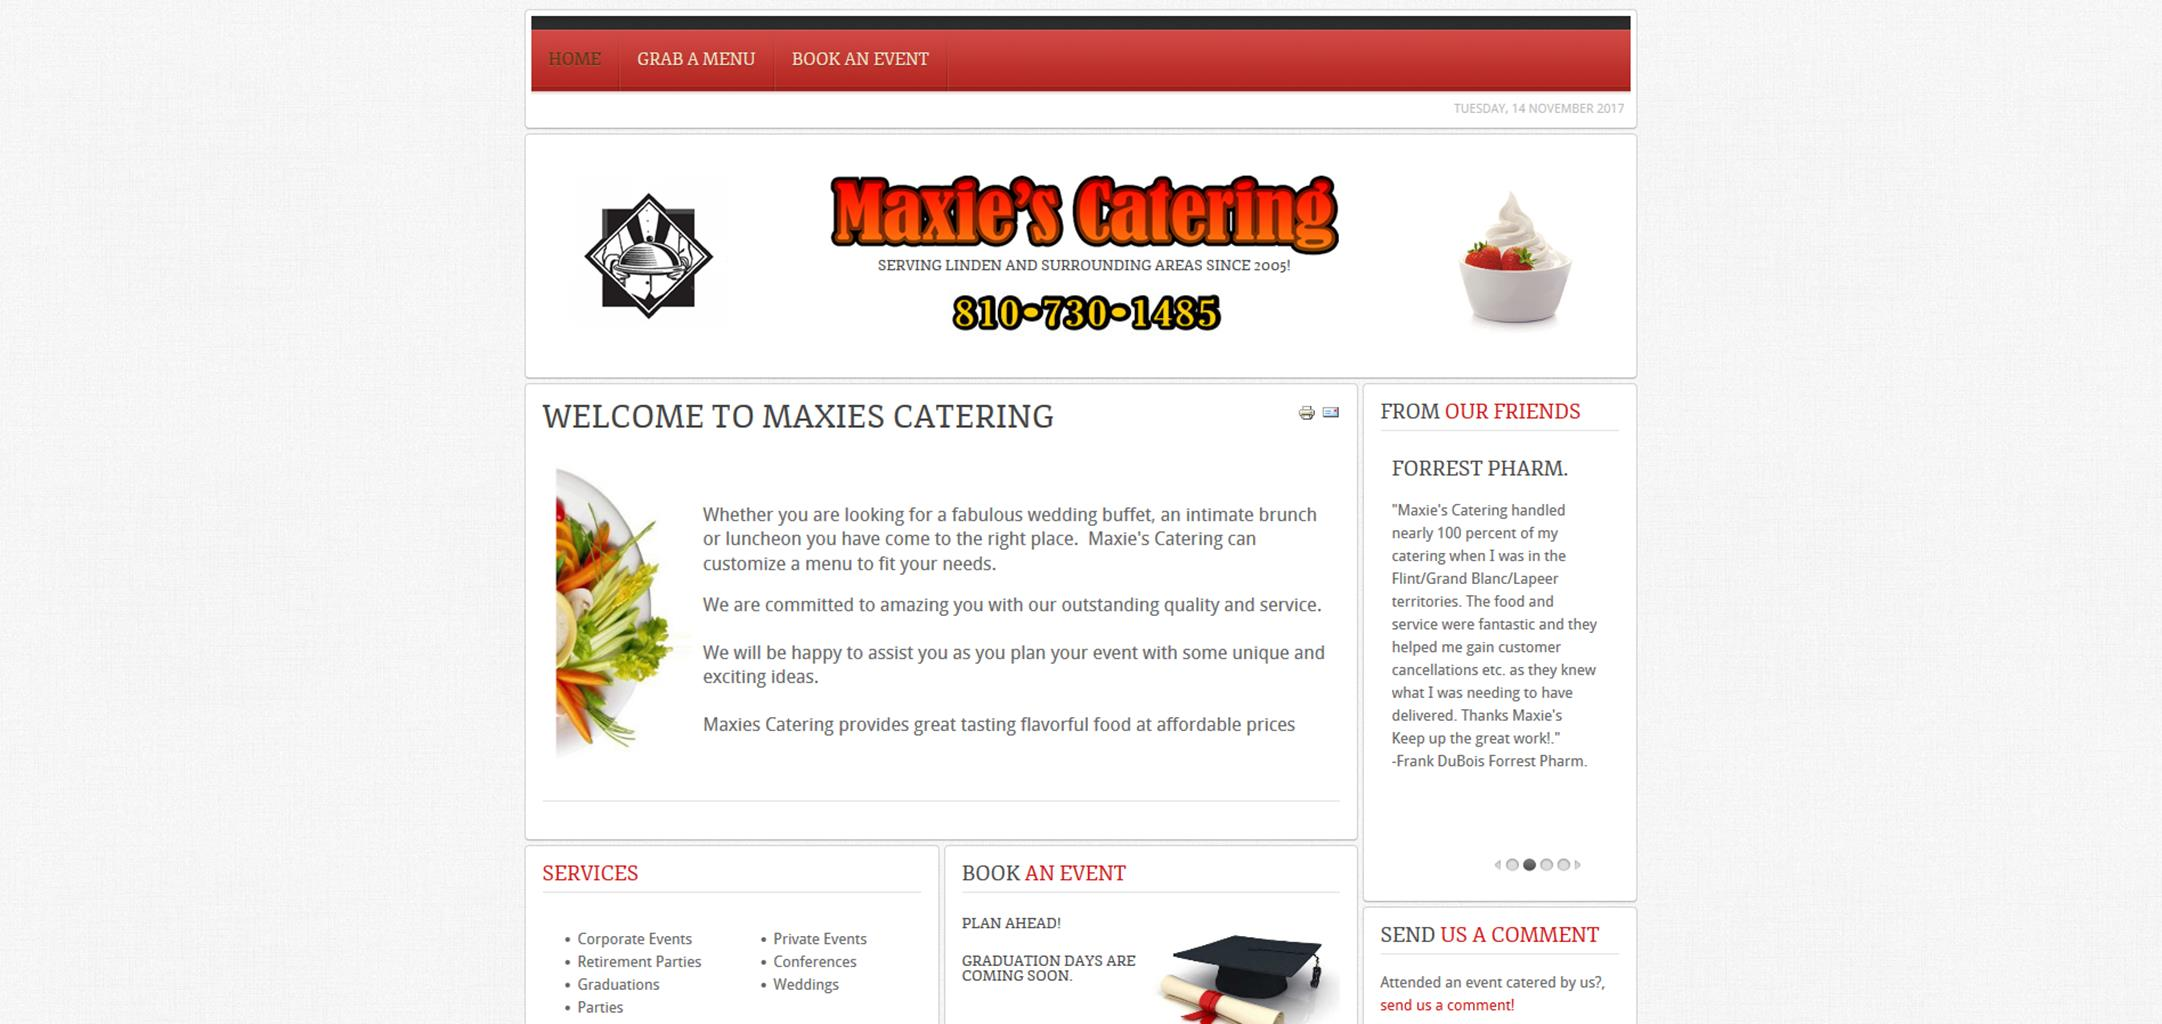 Maxies Catering